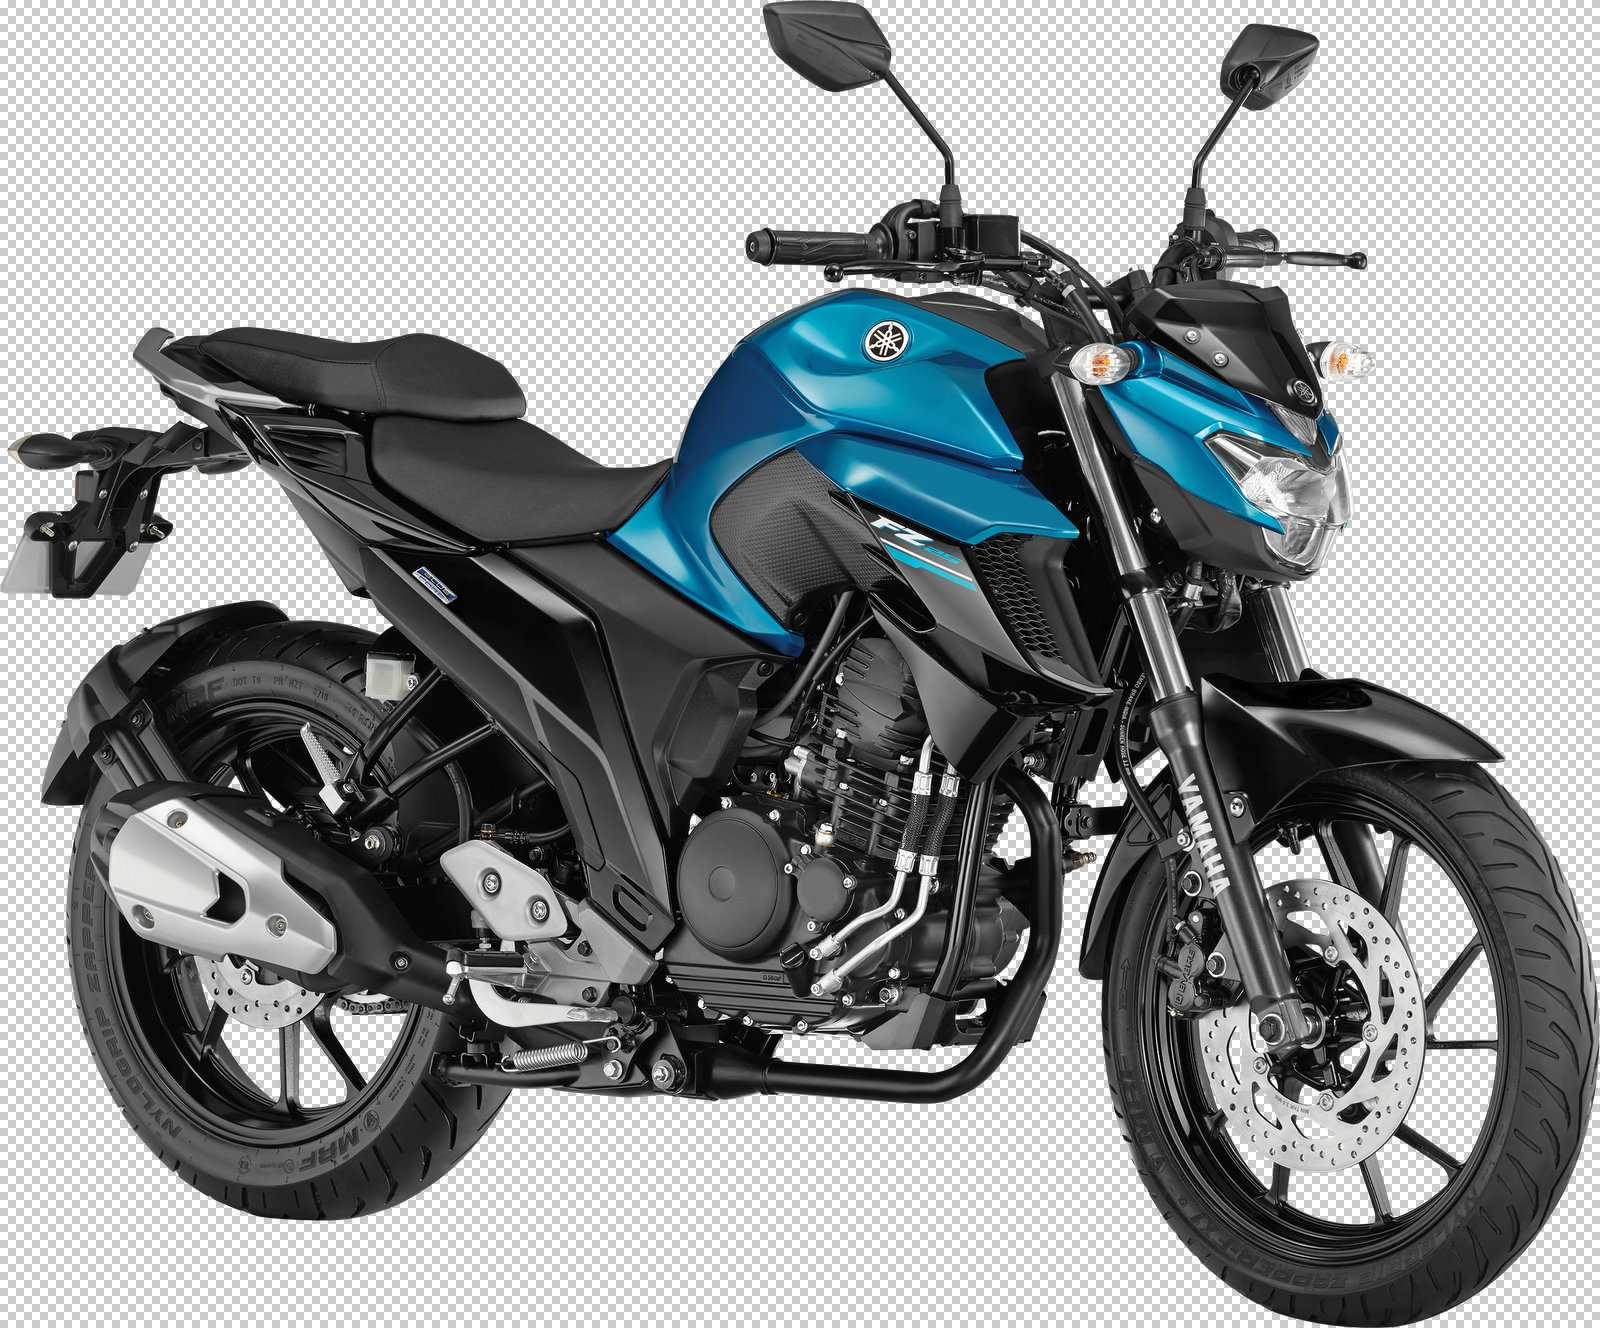 Yamaha launches moto gp edition of the fz150i in malaysia for Yamaha r15 v3 price philippines